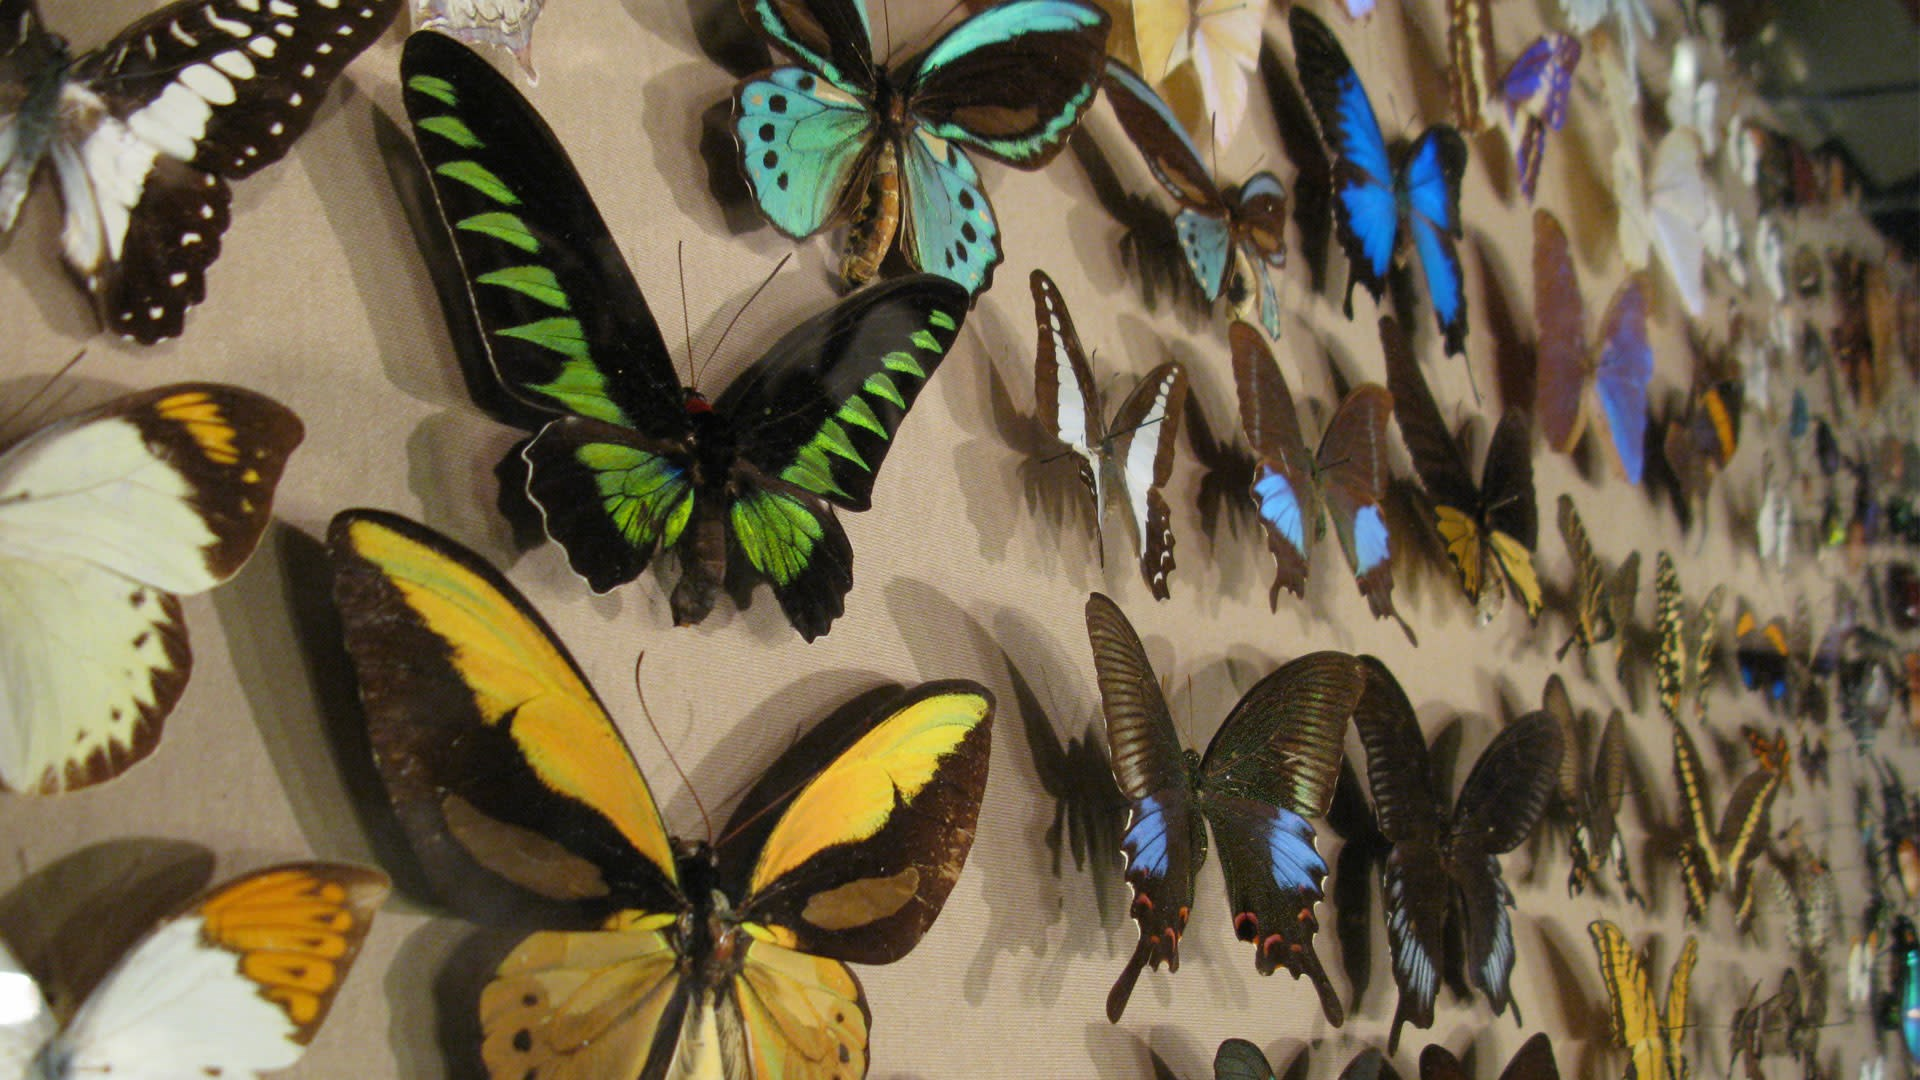 Butterflies on display